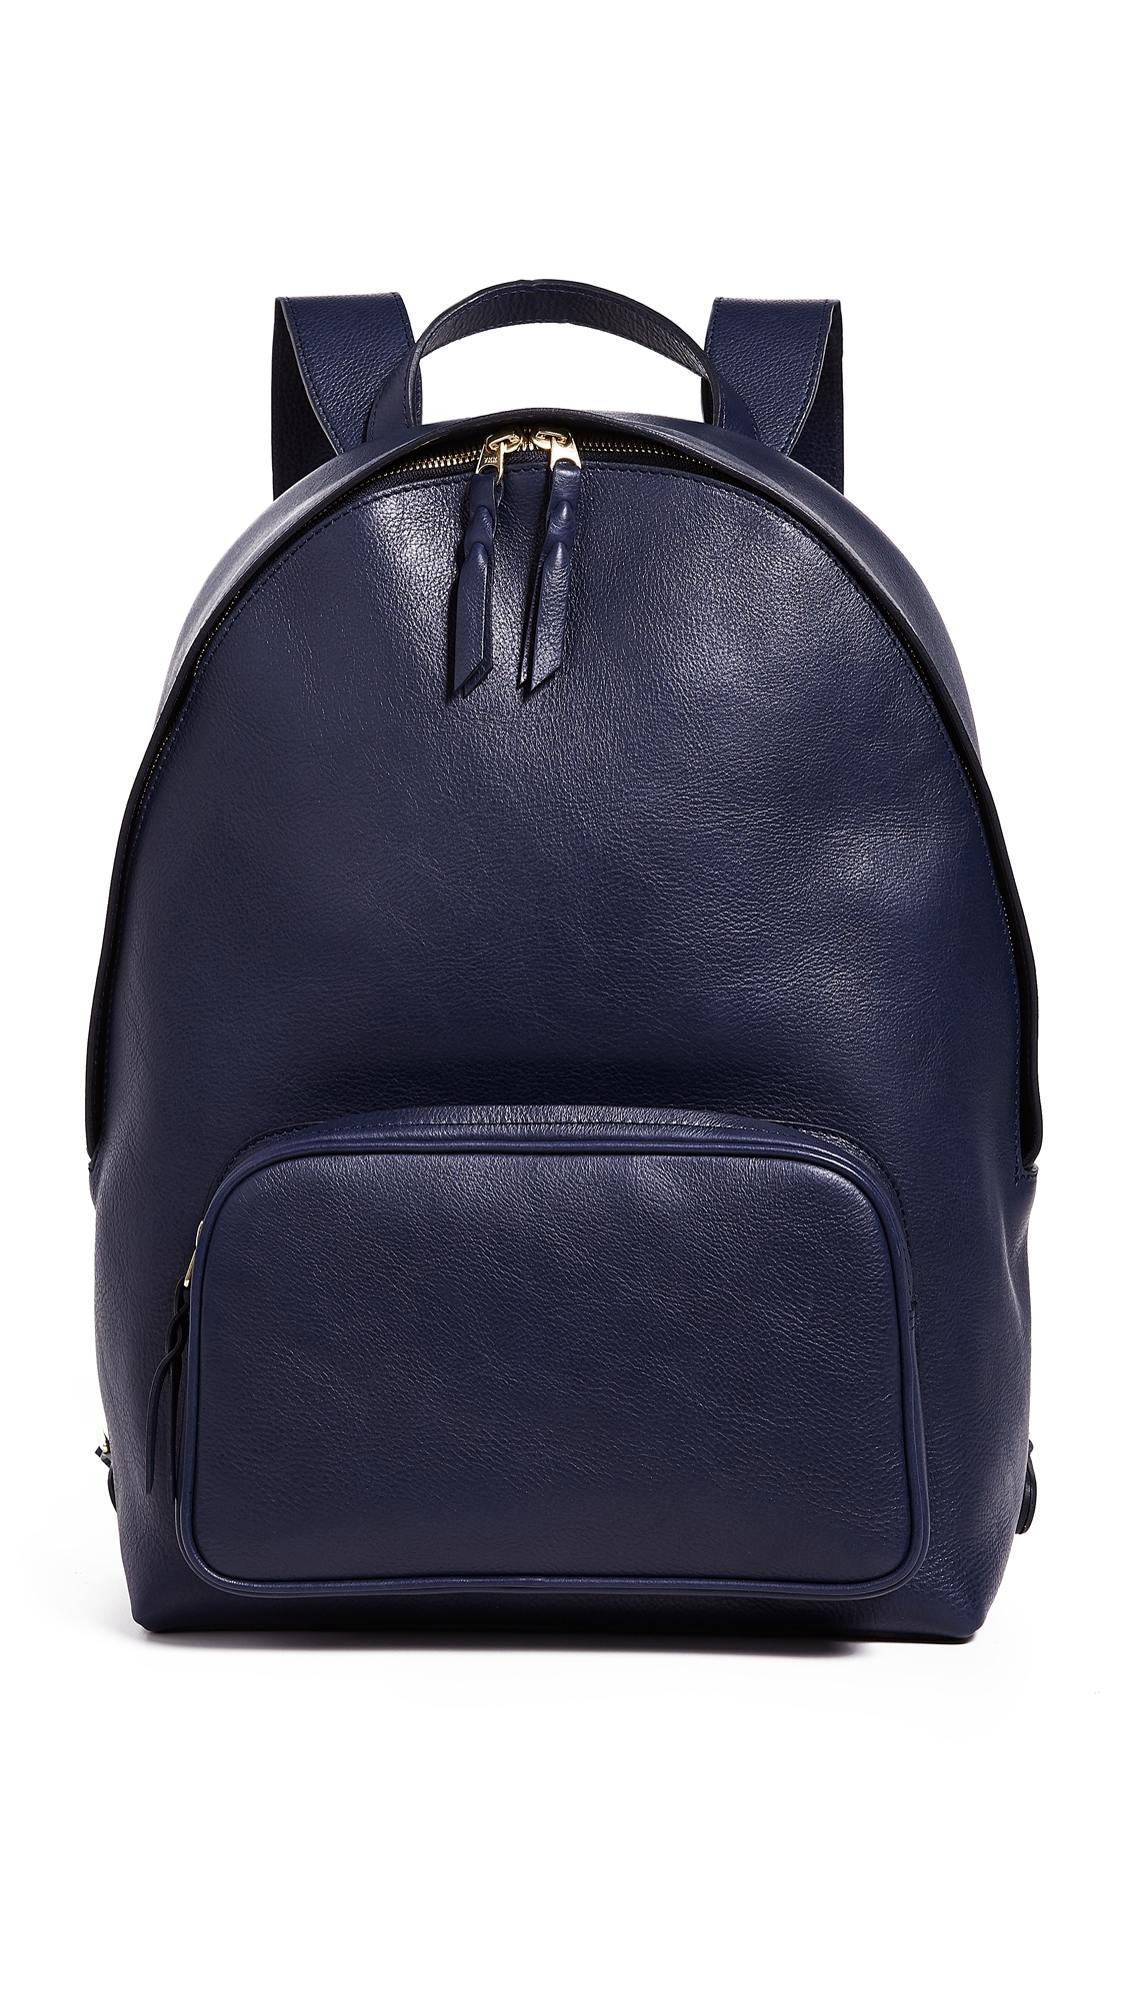 LOTUFF LEATHER Leather Zipper Backpack in Indigo